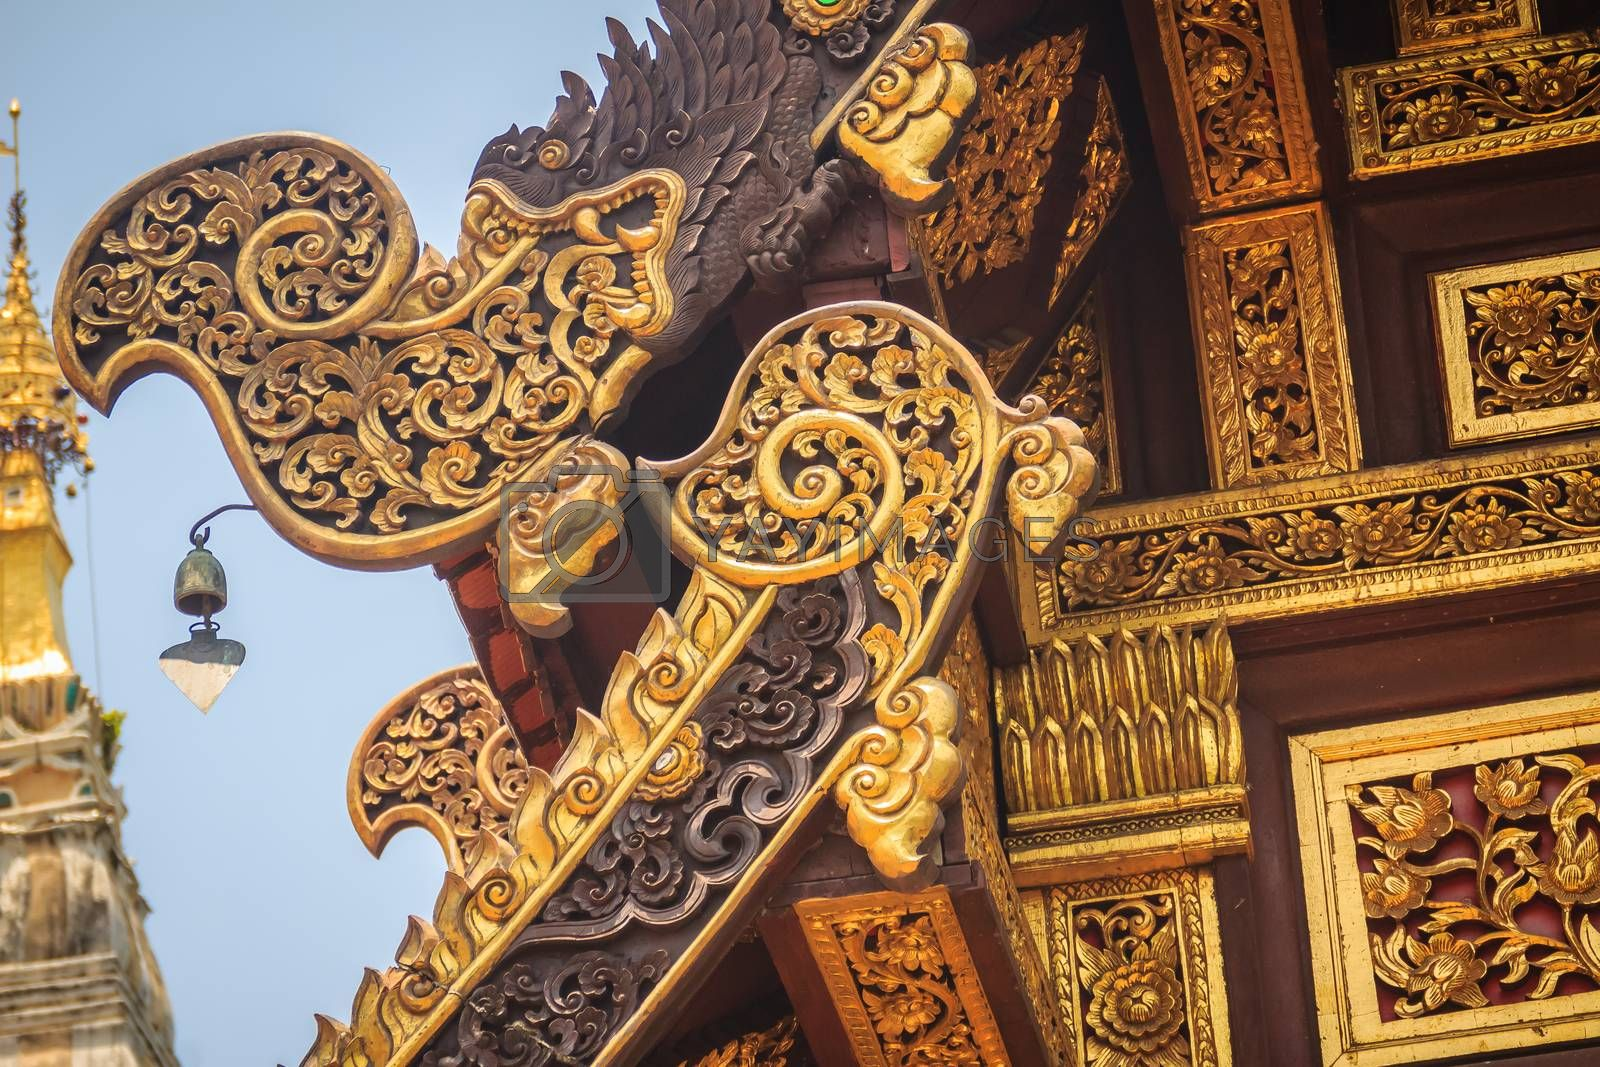 Beautiful craved naga pattern on the rafter and gable of the Thai's northern style church at Wat Chedi Liam, one of the ancient temple in the Wiang Kum Kam archaeological area, Chiang Mai, Thailand.